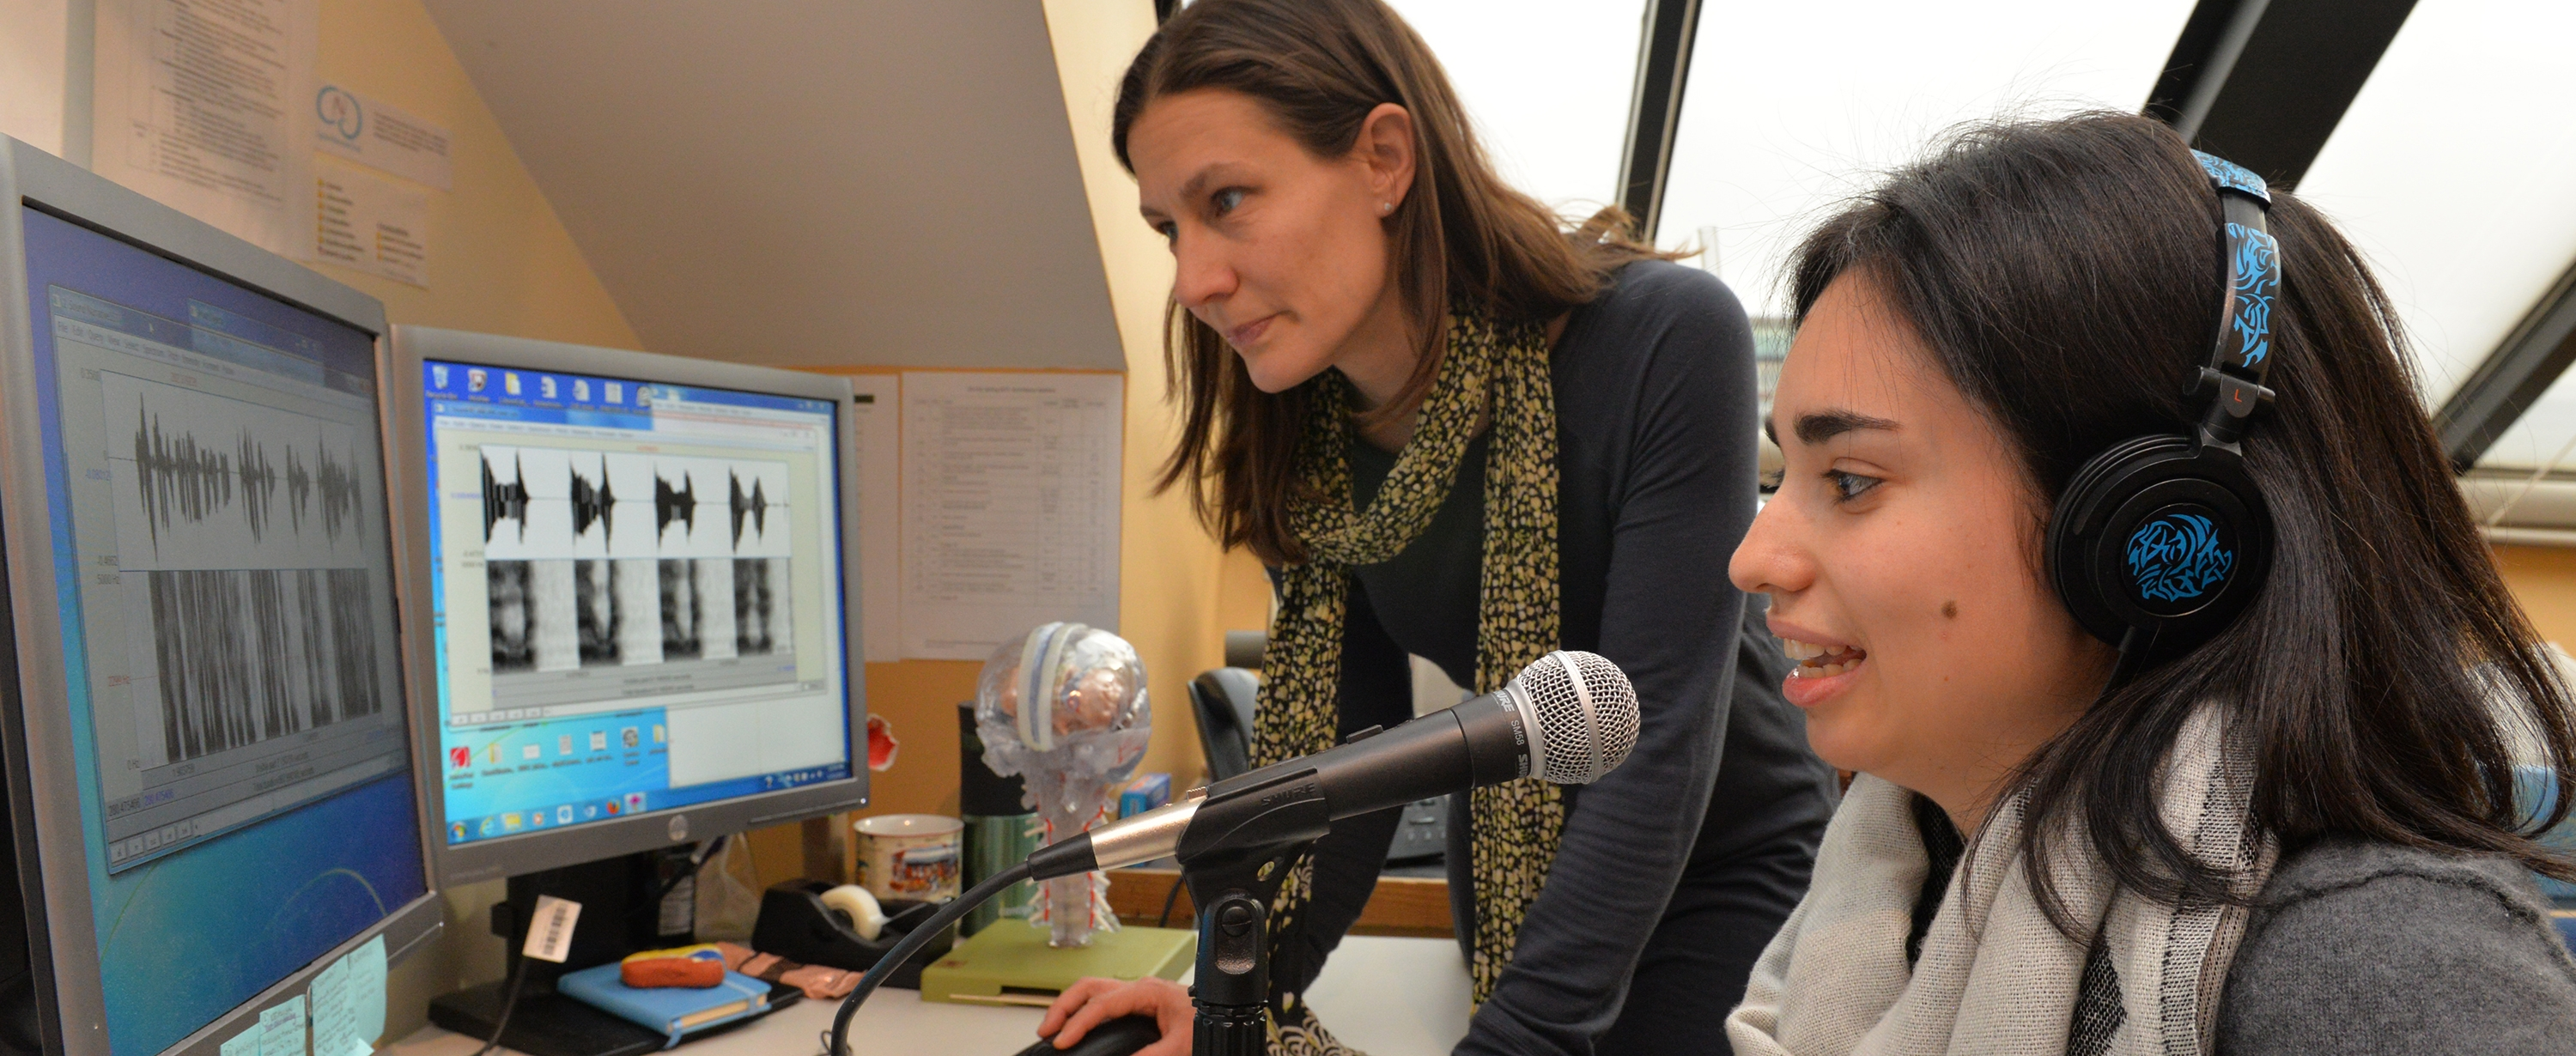 Dr. Zipse studying rhythm and timing abilities in people with Aphasia.